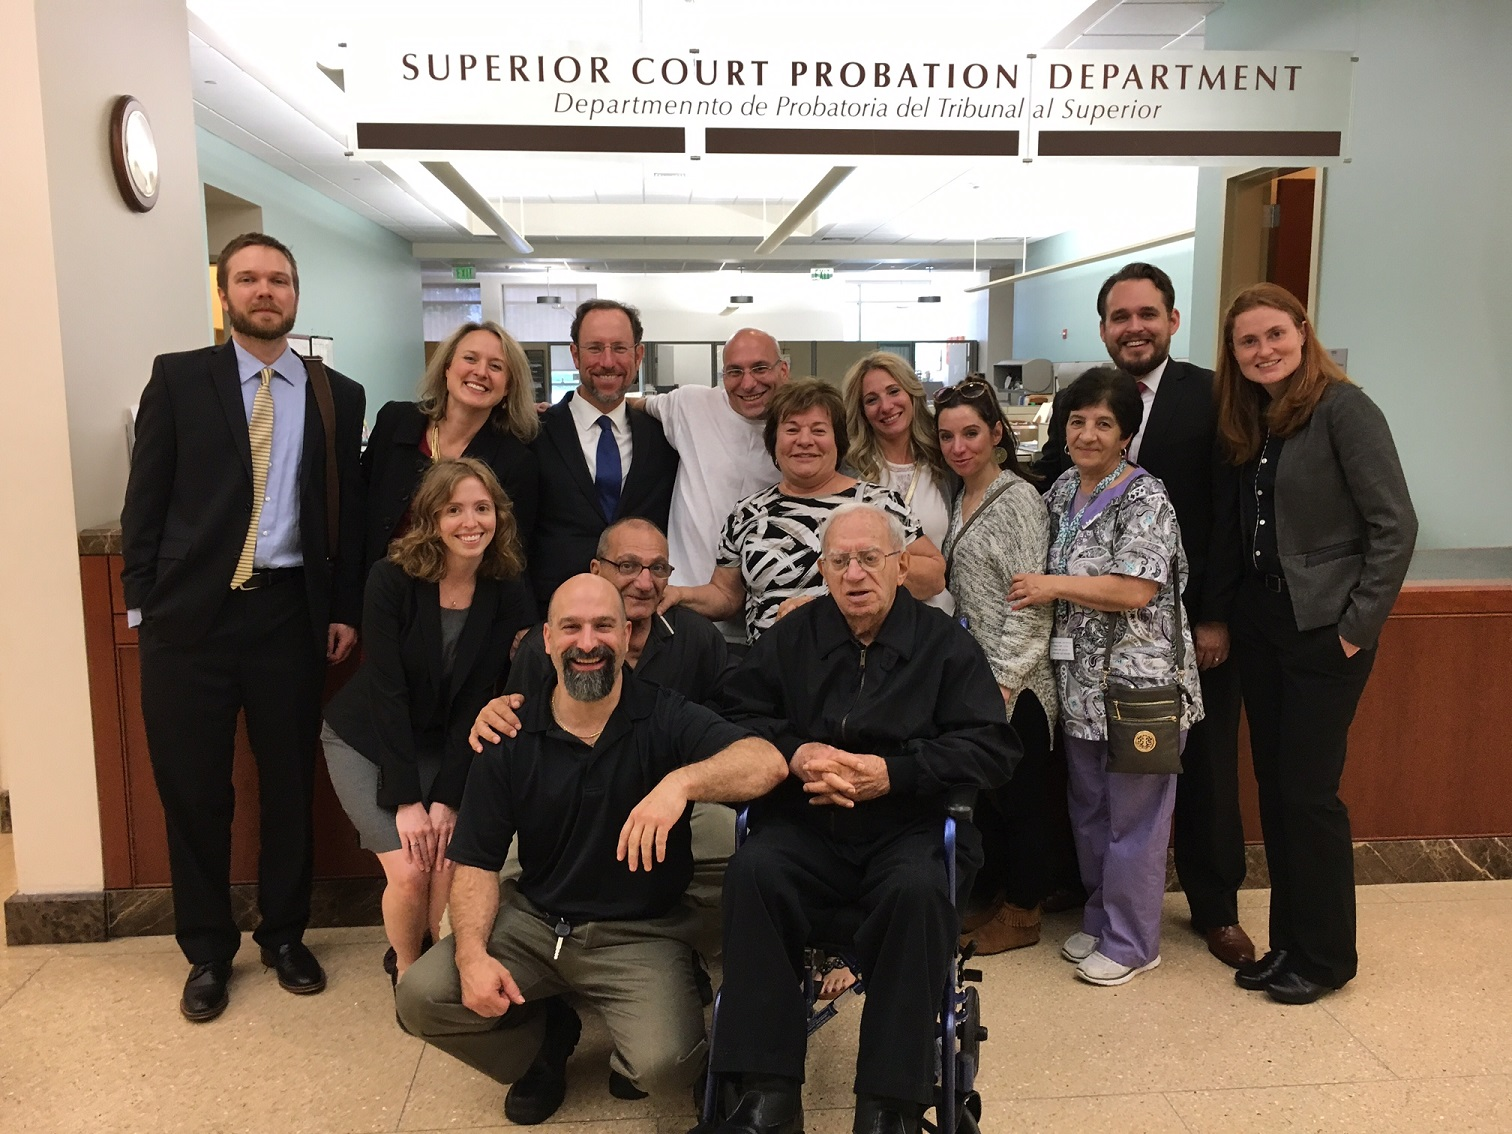 Pictured in addition to Mr. Cosenza's family are (back row, left to right): Attorney Malm, Attorney Kavanaugh, Attorney Wood, Attorney Gant, Attorney Eva Jellison, Attorney Natalie Rice (second row).